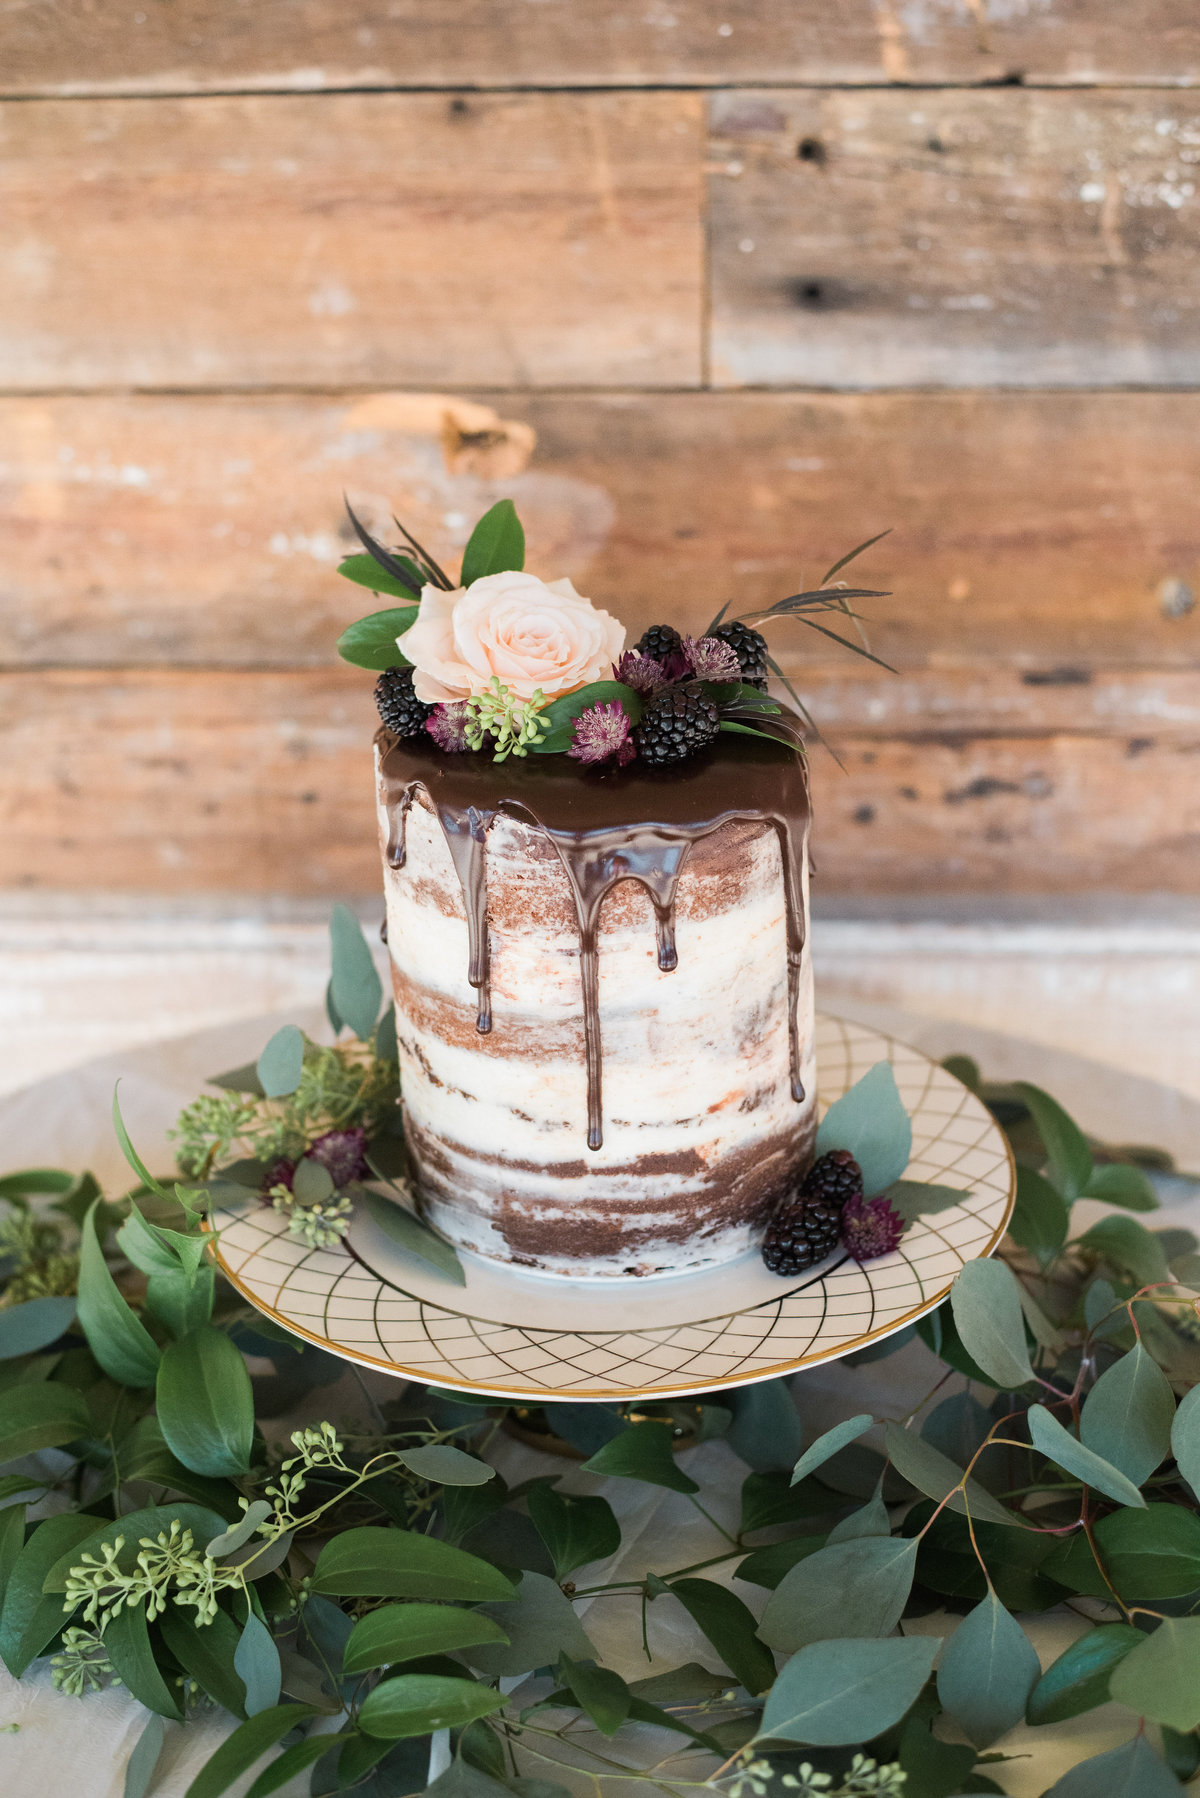 chocolate naked cake topped with florals and greenery